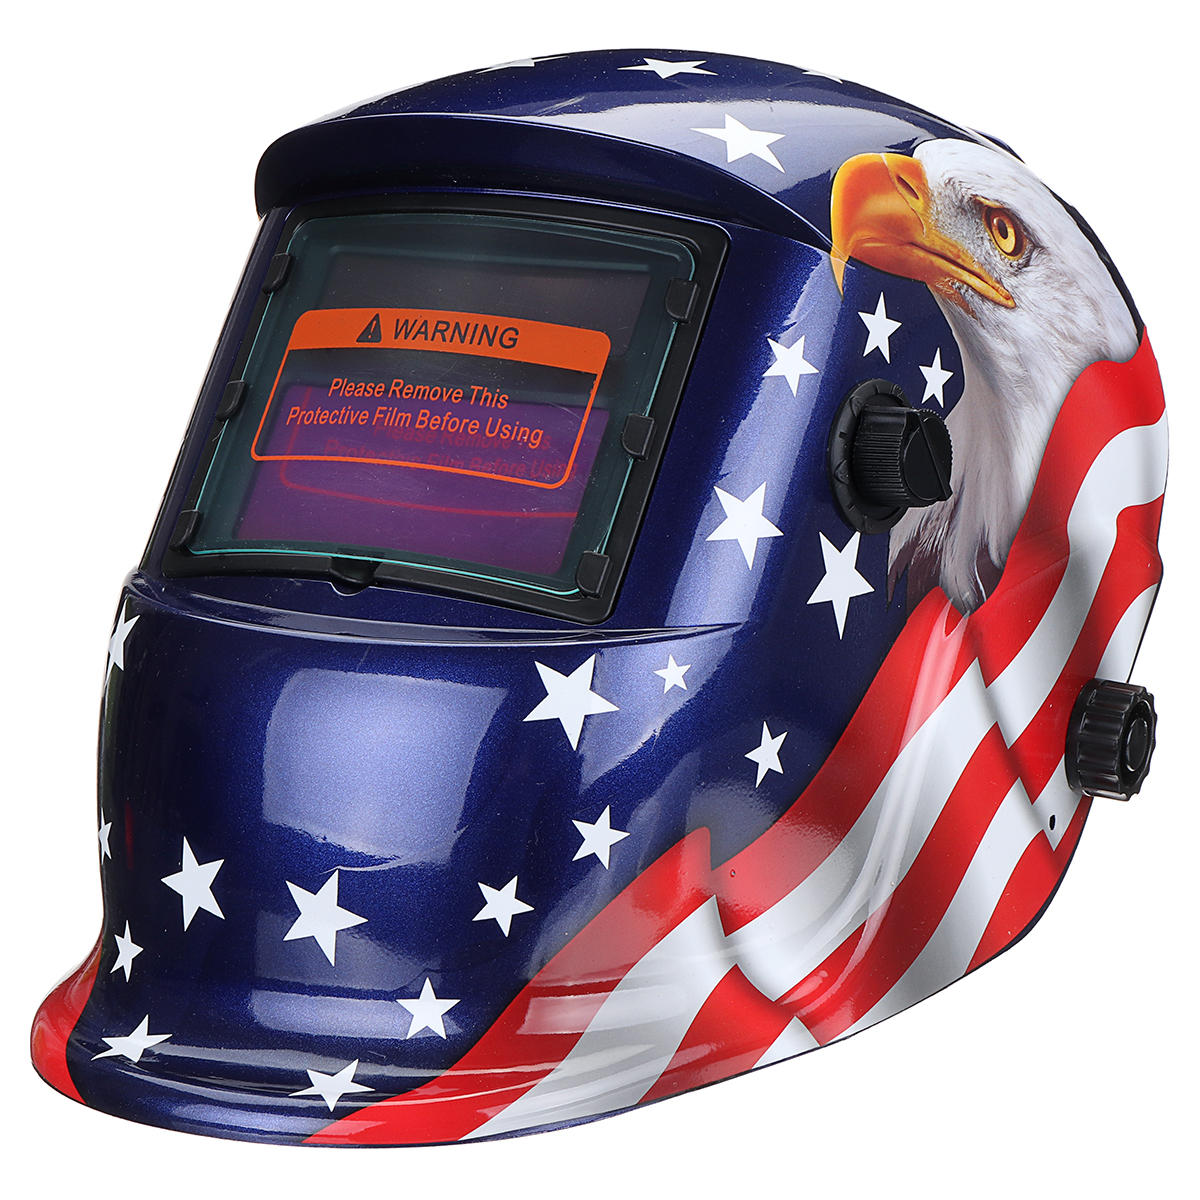 Welding Helmets Alert Black Skull Solar Energy Automatic Variable Light Welding Mask Tig Spot Welding Helmet With Adjustable Headband Knob Welding & Soldering Supplies